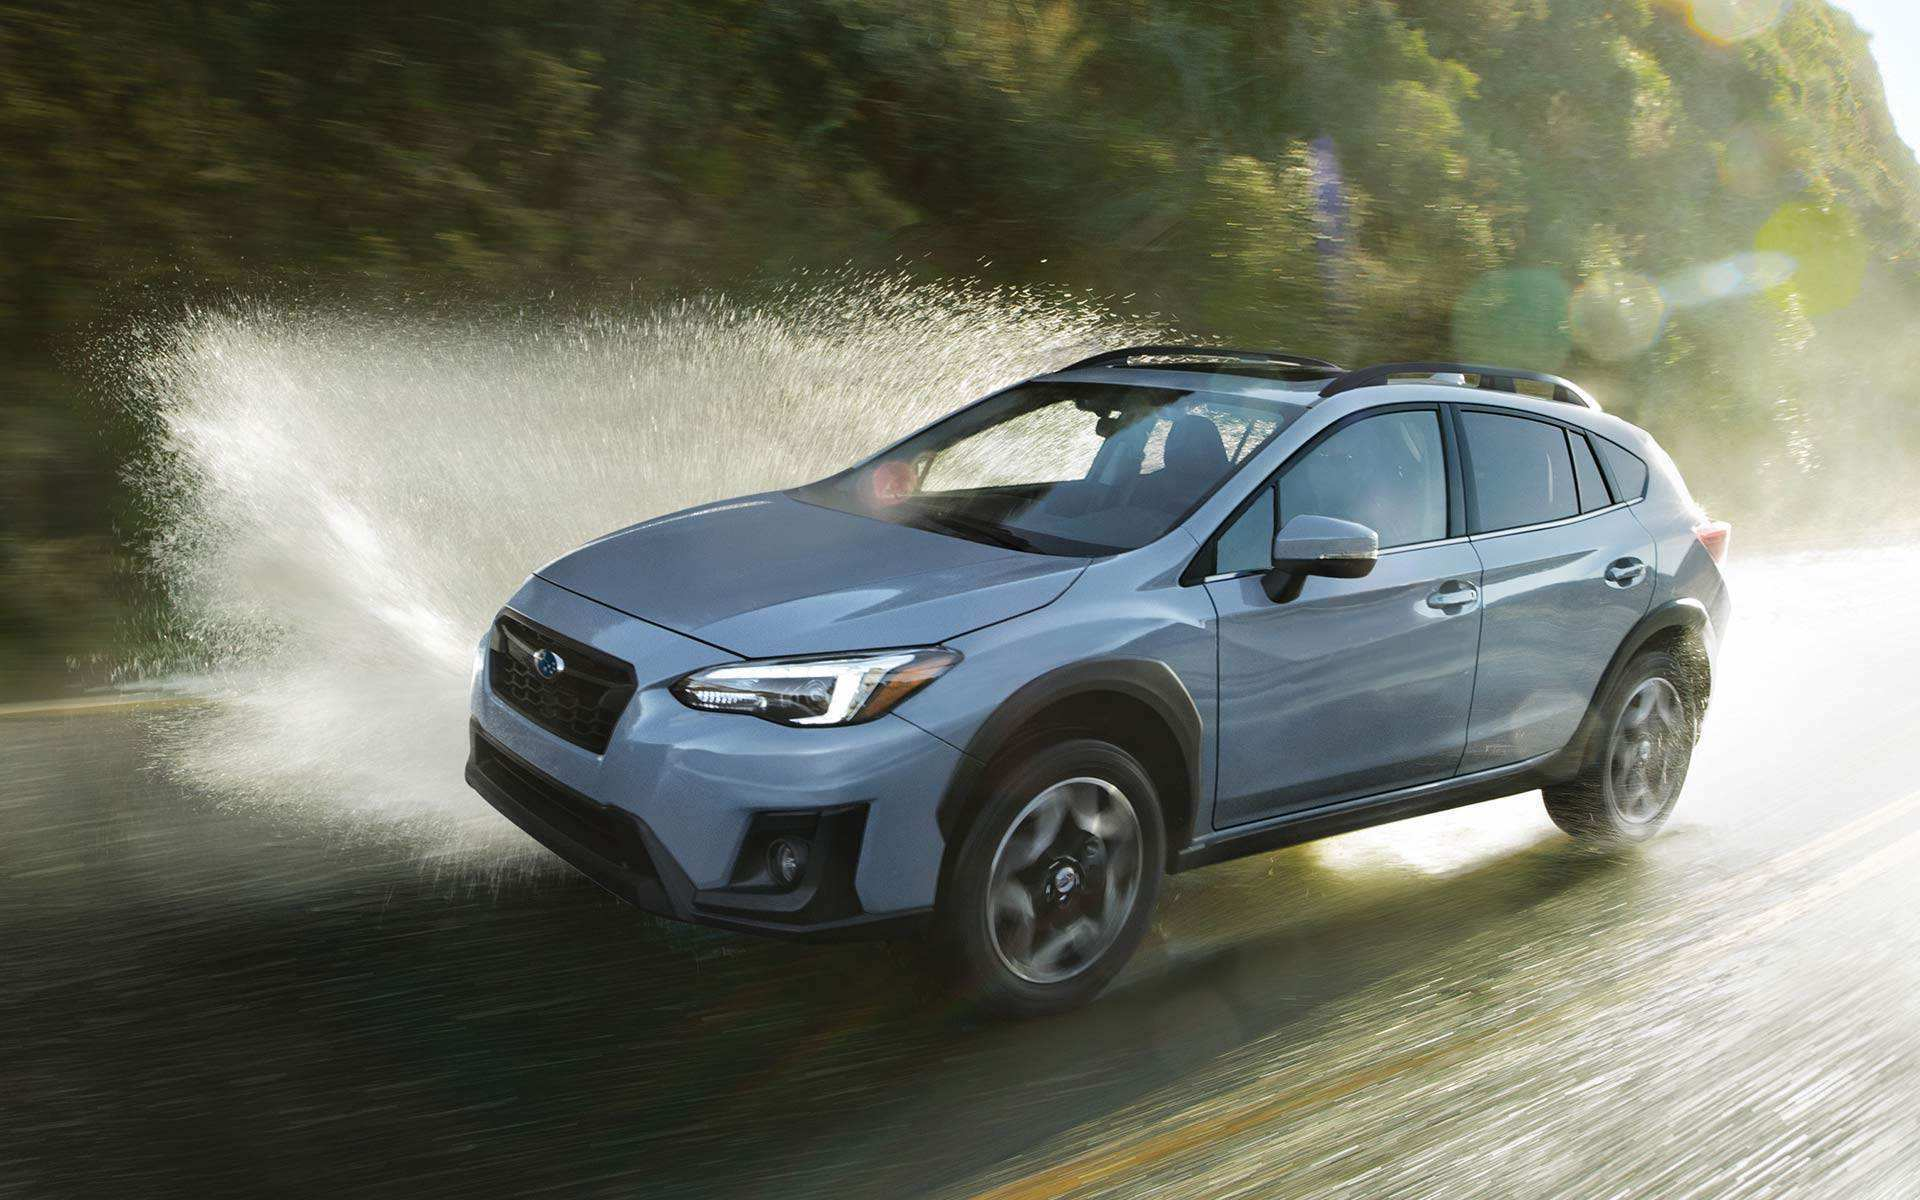 59 Best Review Subaru Xv Turbo 2020 Overview by Subaru Xv Turbo 2020